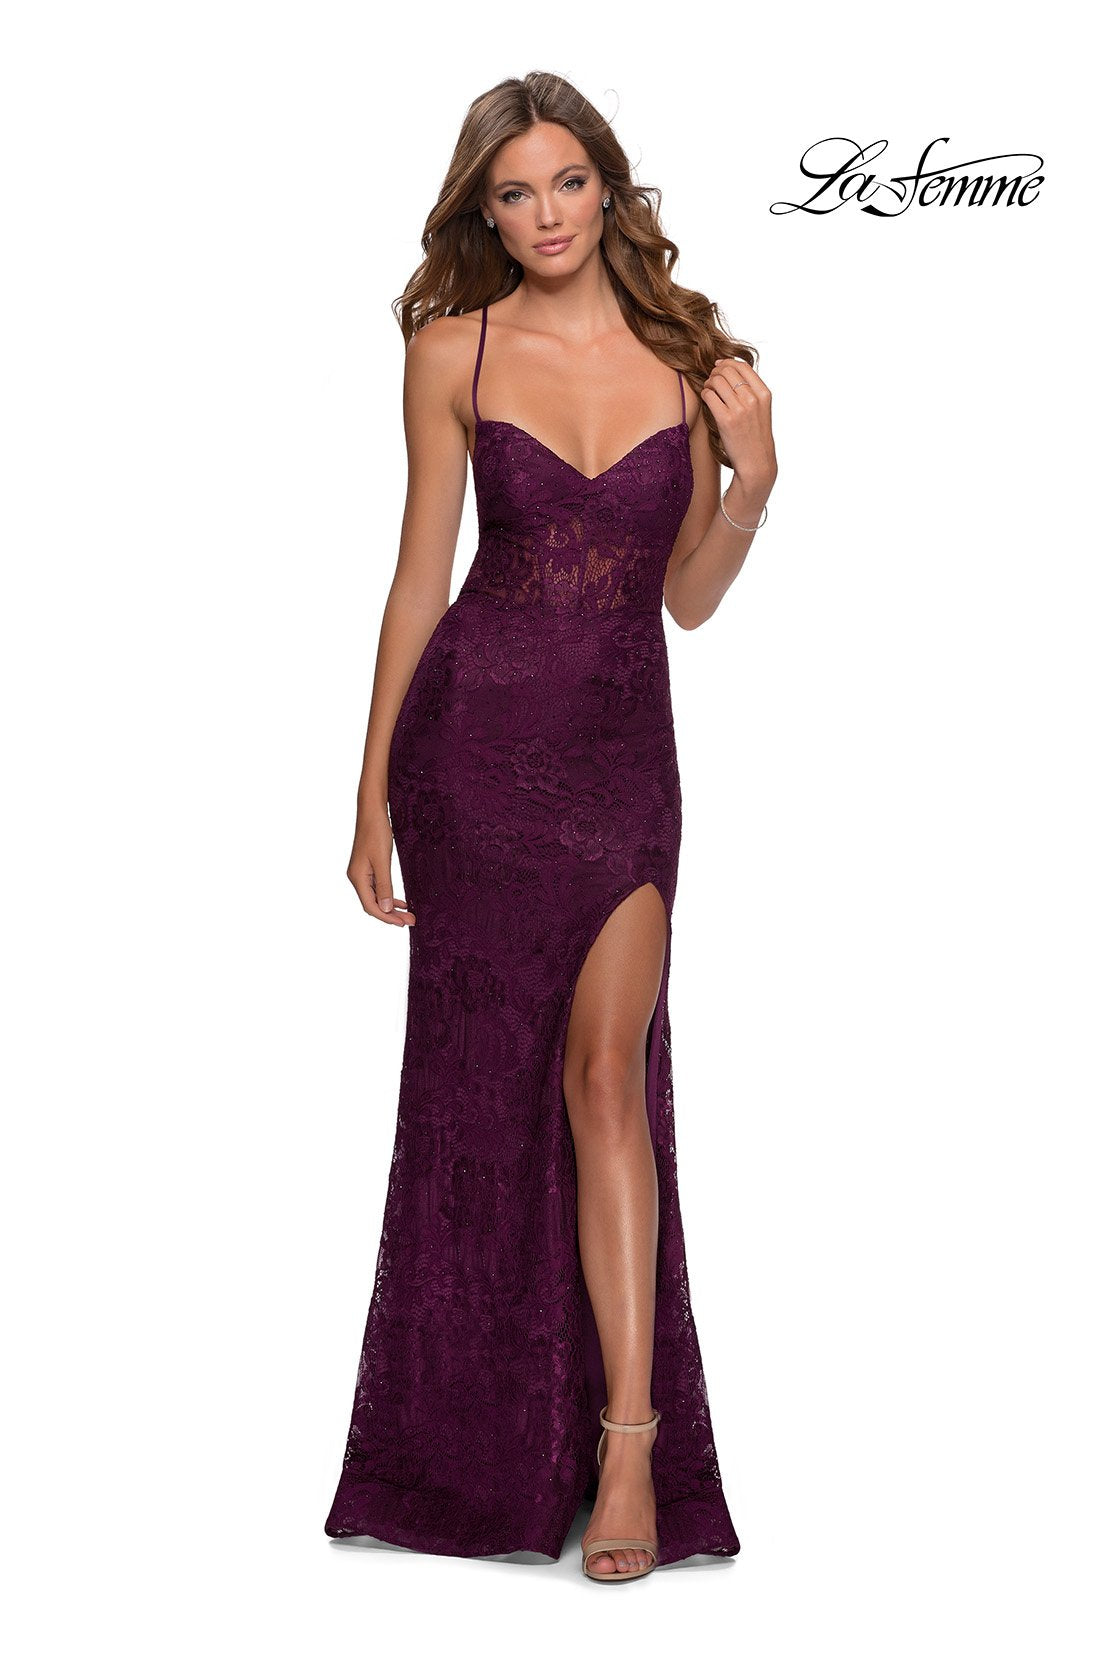 La Femme 28534 prom dress images.  La Femme 28534 is available in these colors: Dark Berry, Emerald, Navy.